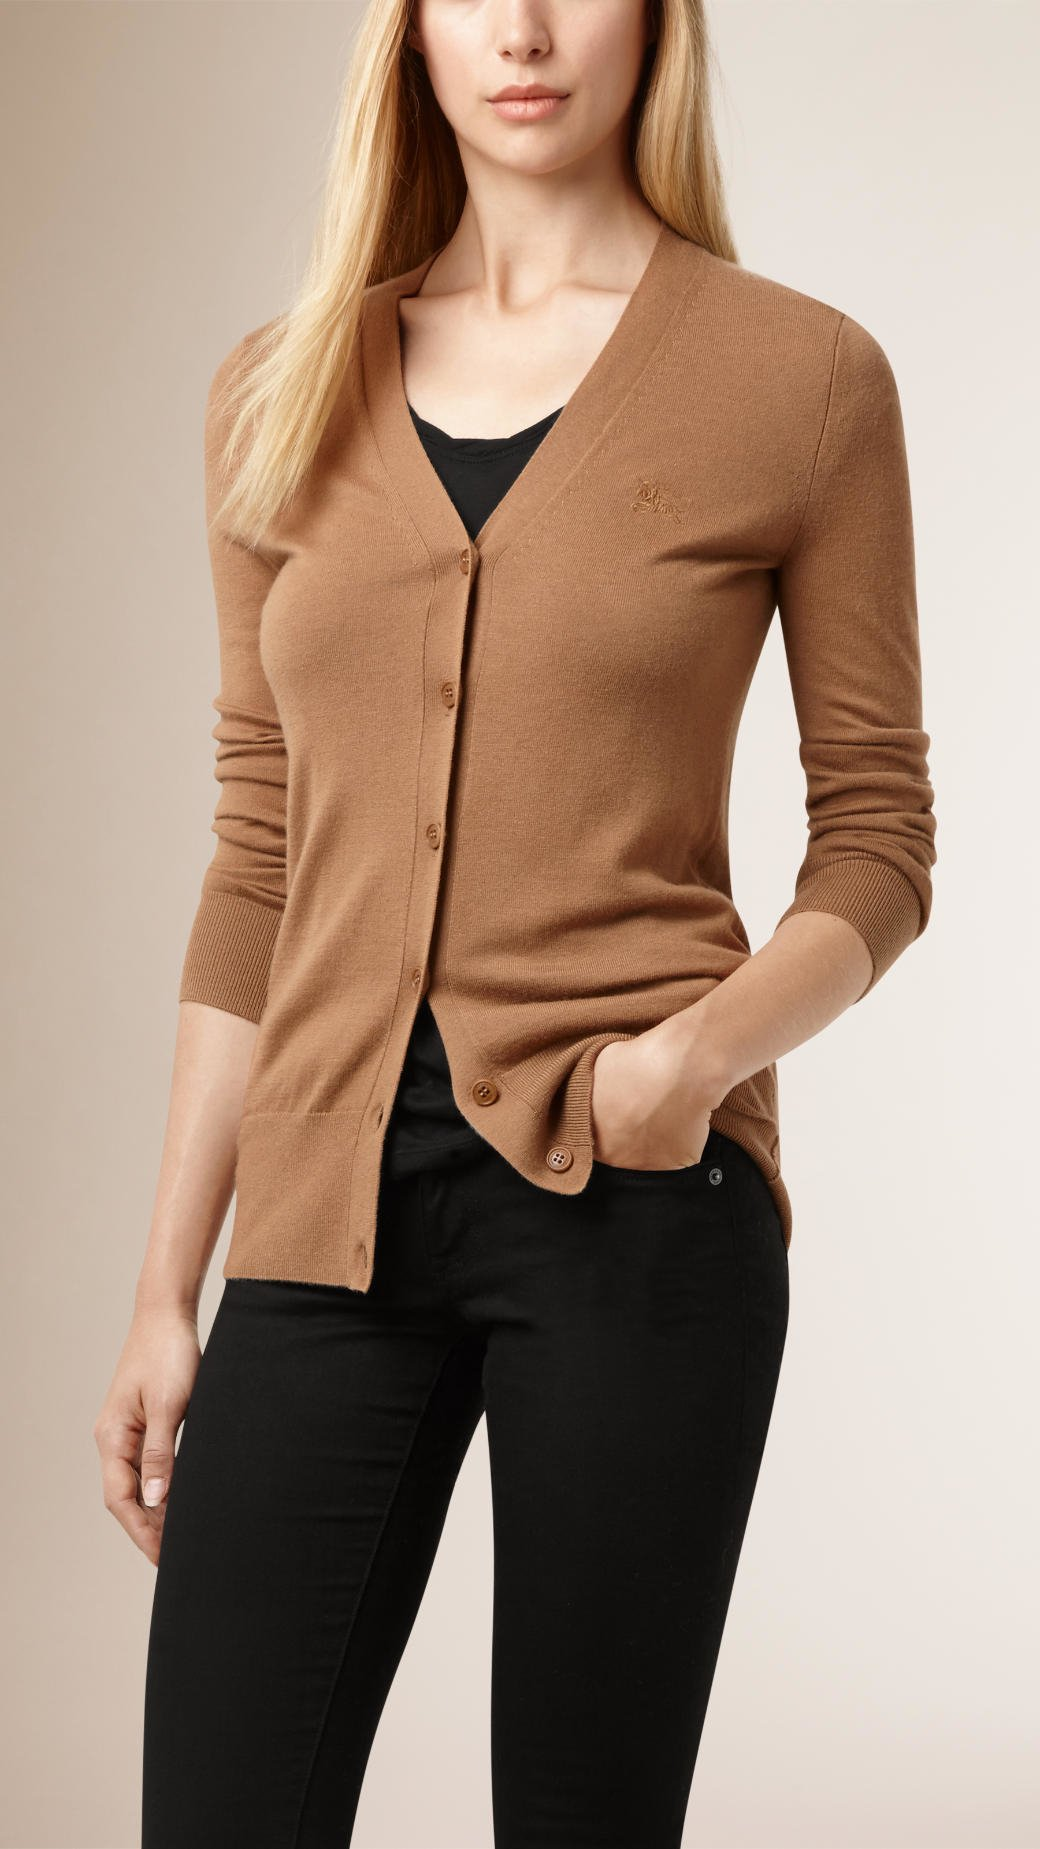 Burberry V-neck Cashmere Cardigan in Natural | Lyst